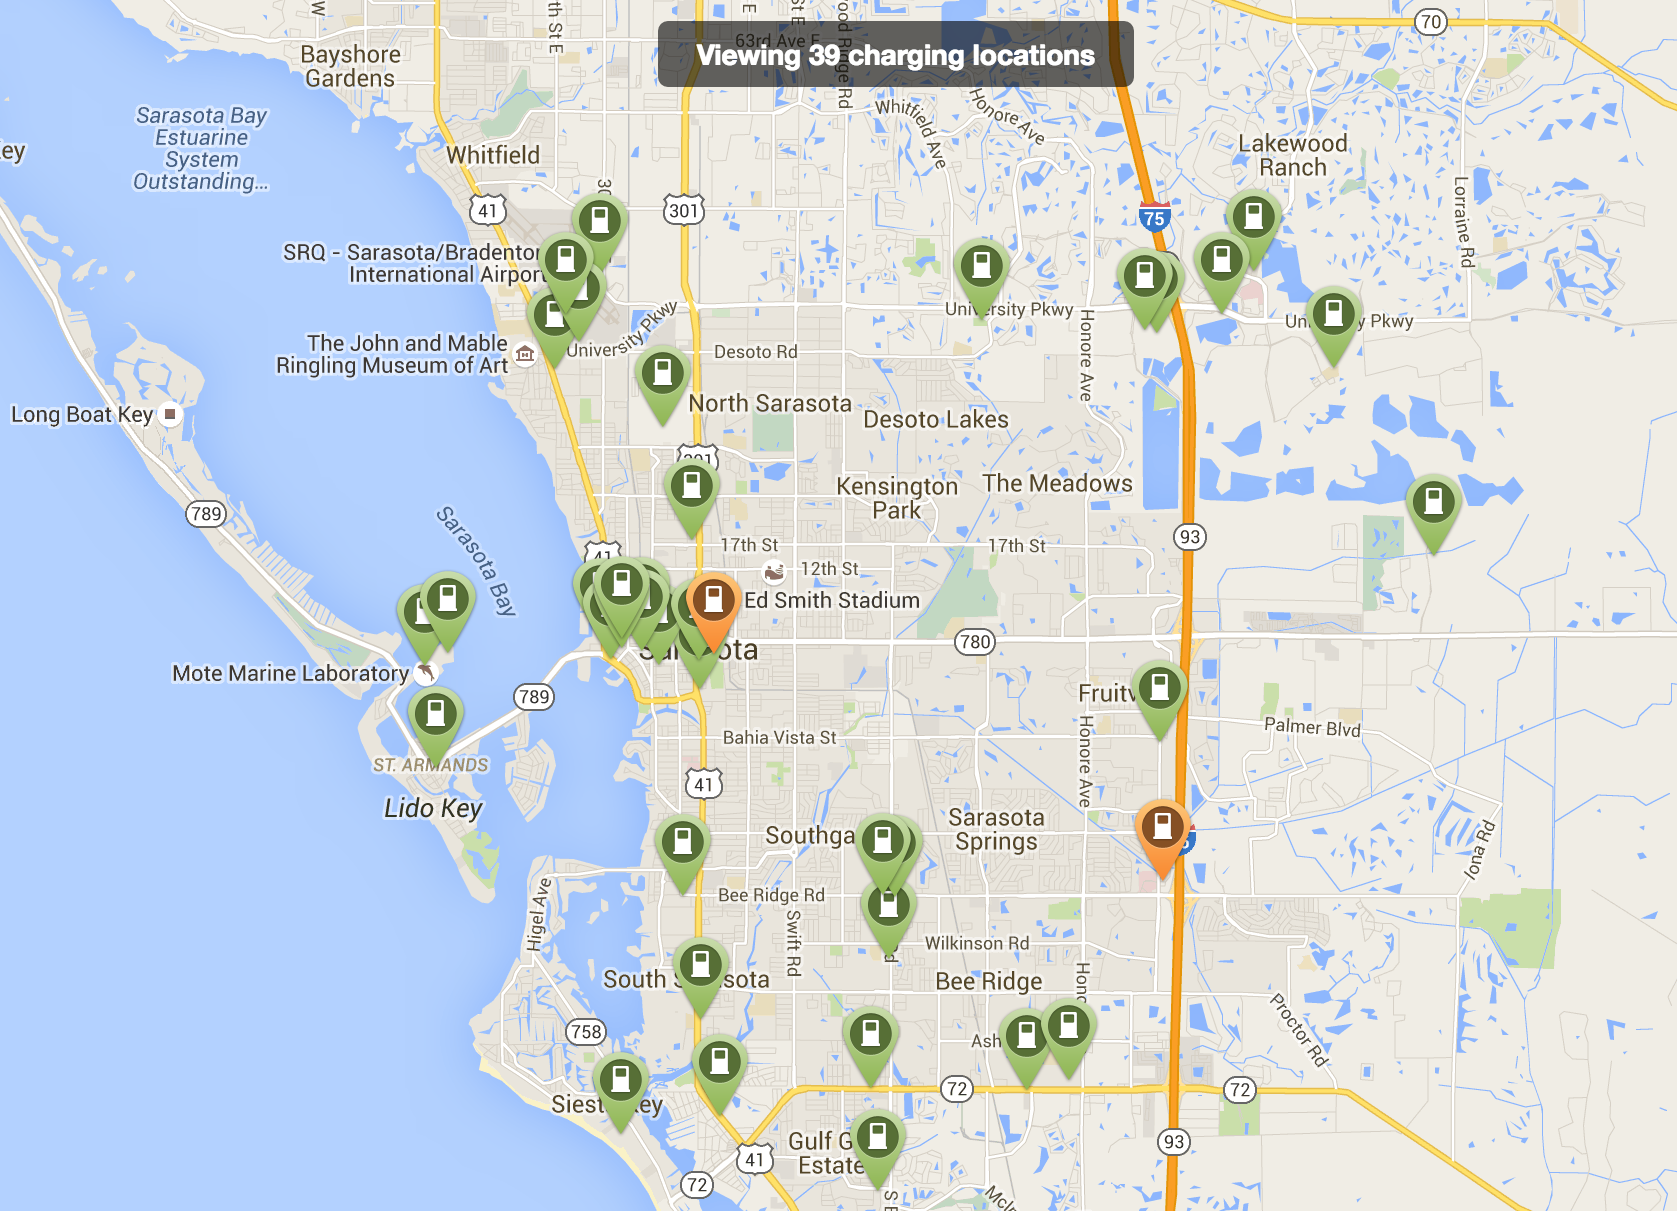 A Brief Comparison Of Ev Charging Availability City To